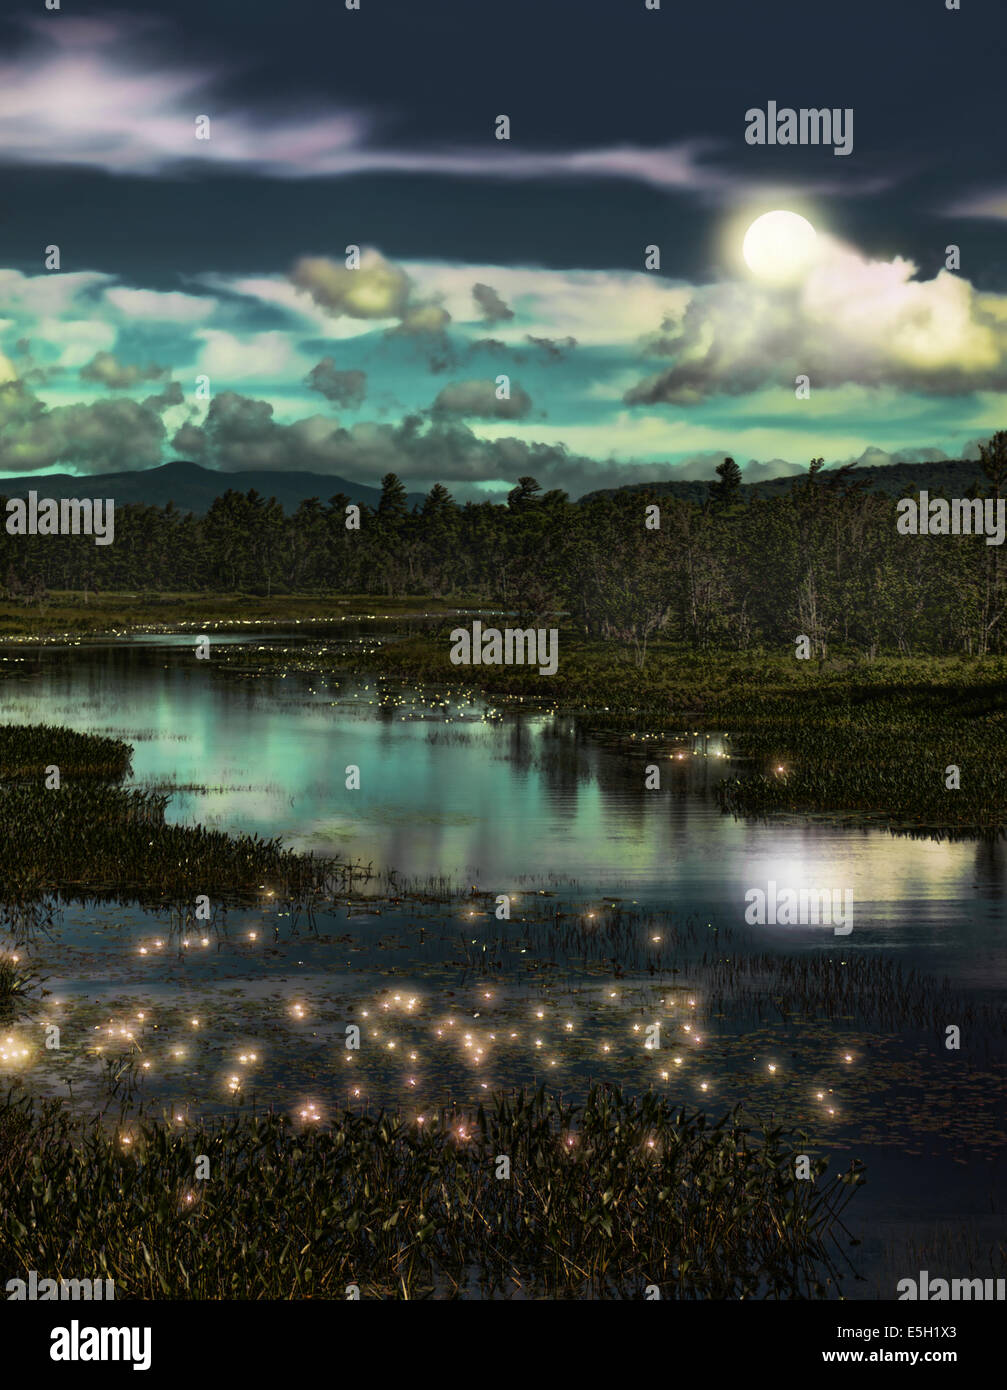 depiction of a forest stream with lightning bugs at twilight - Stock Image